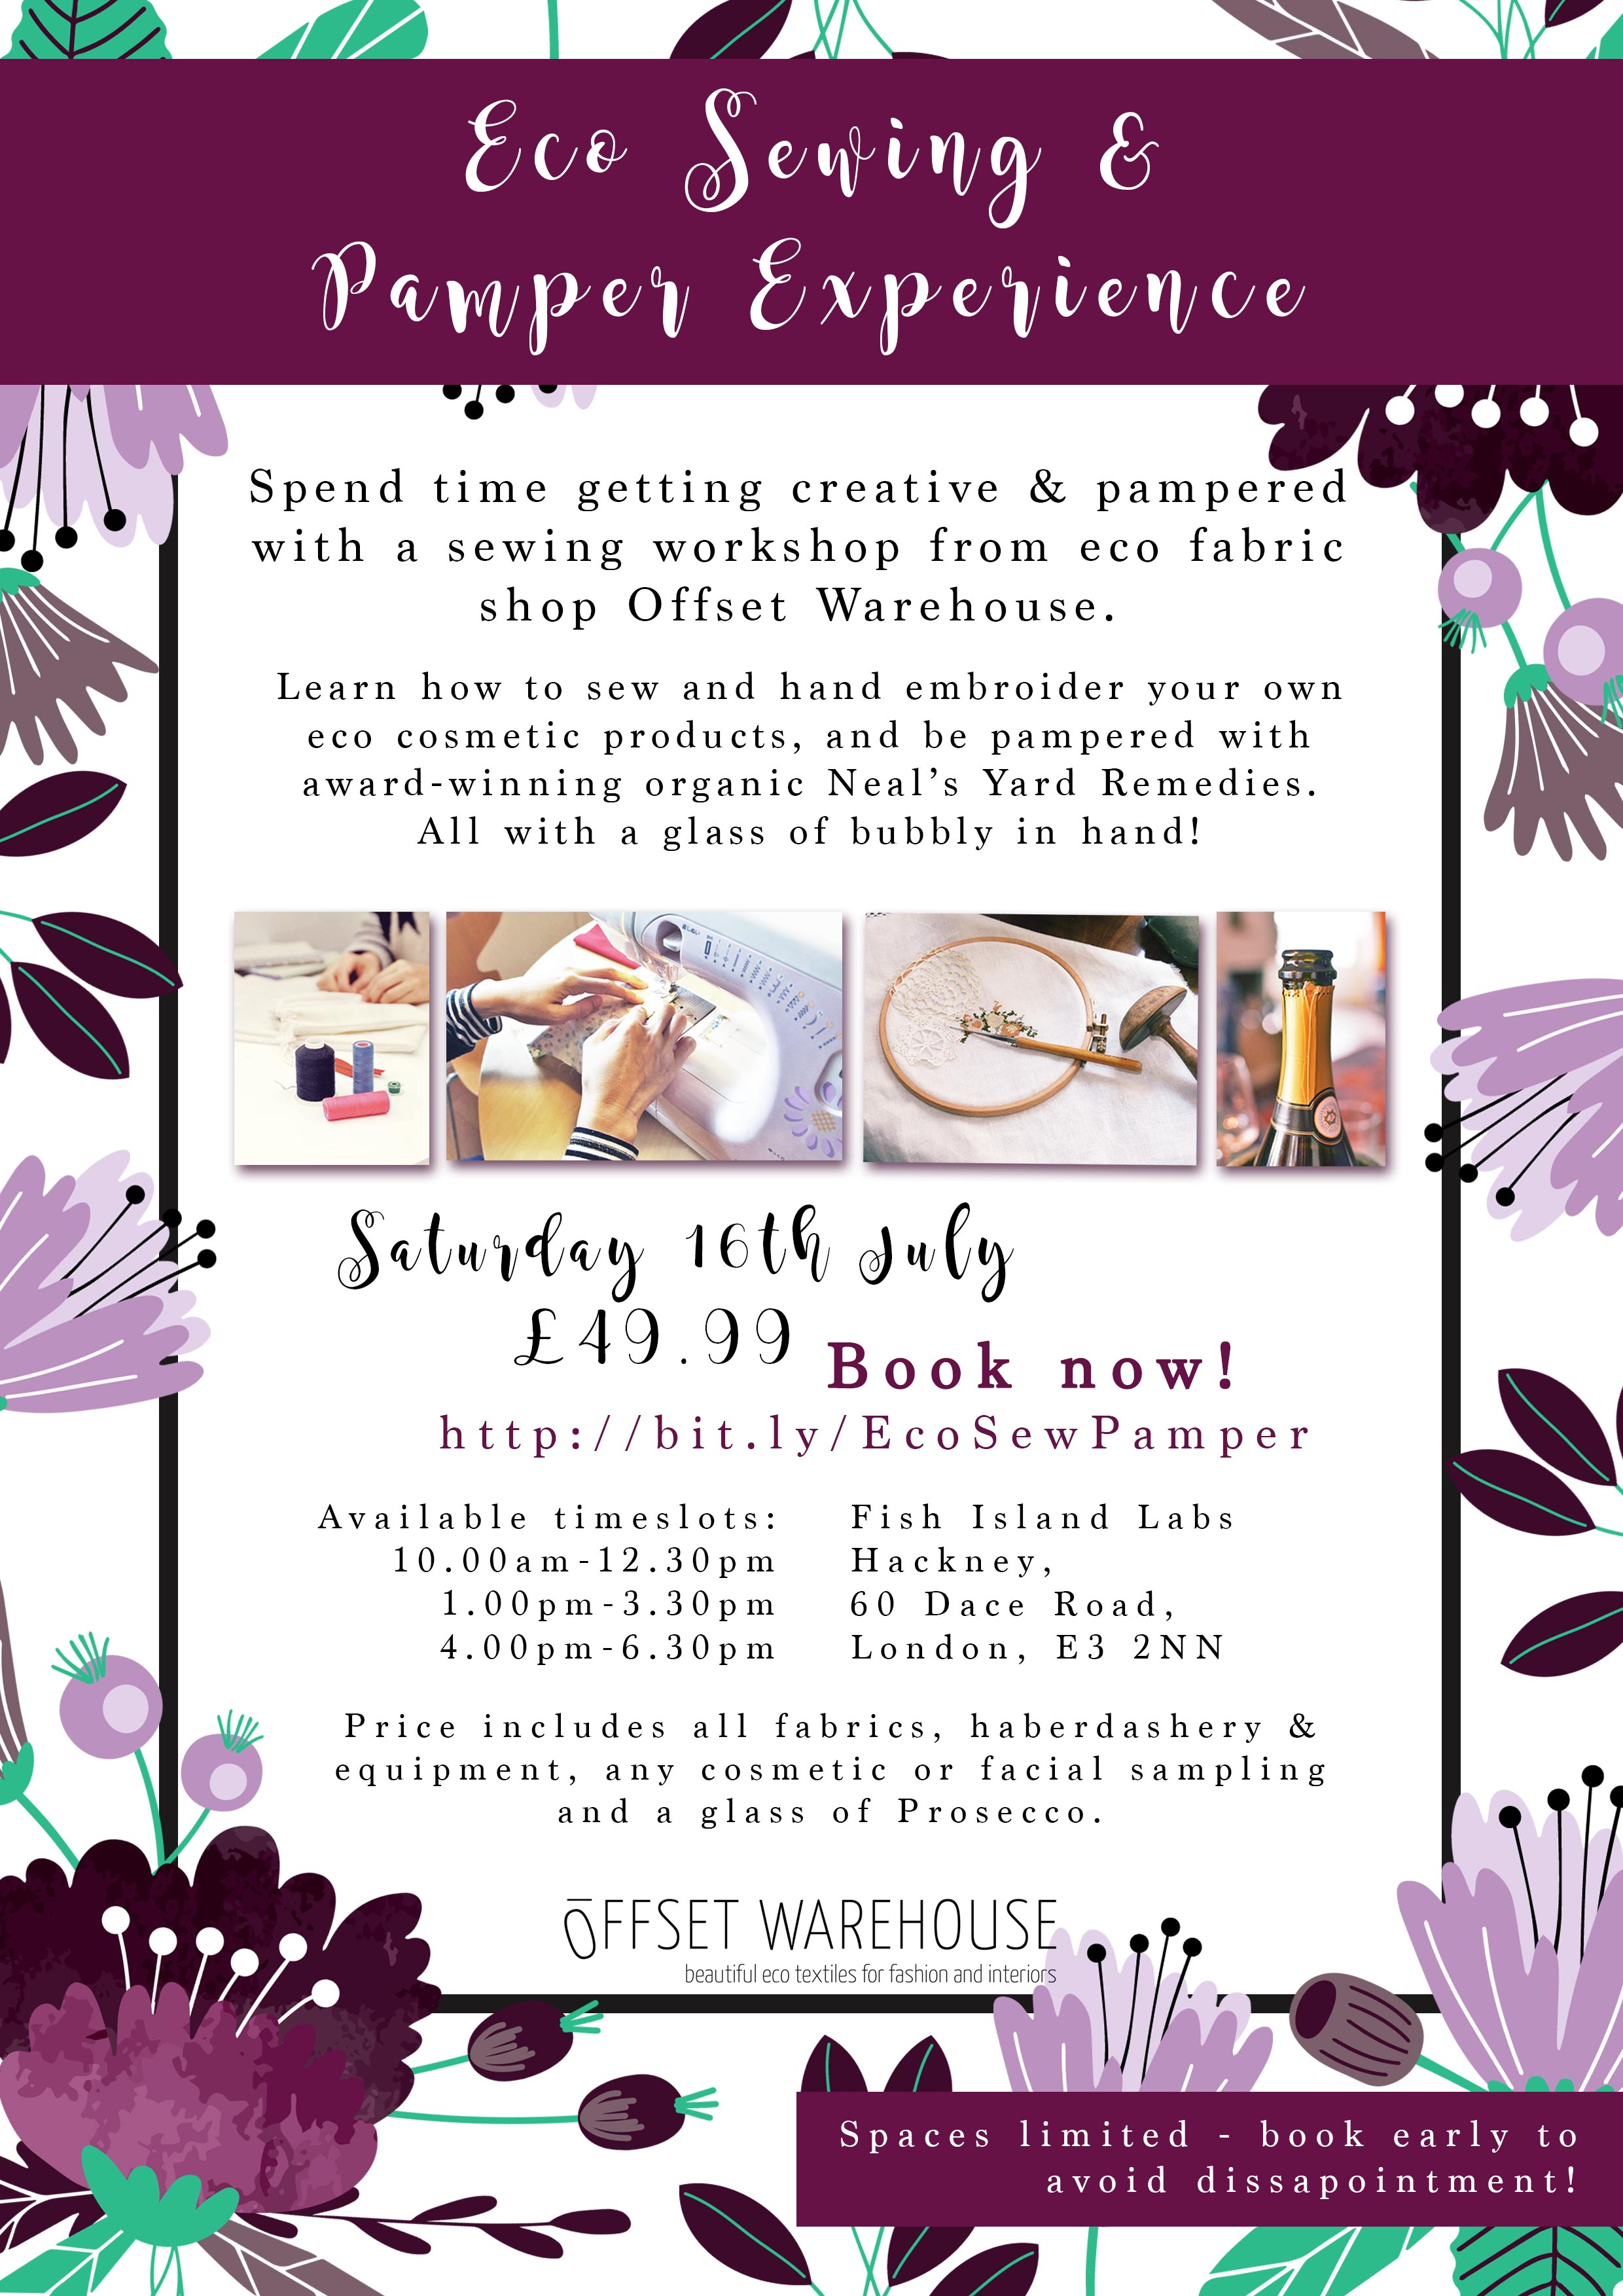 Eco Sewing & Pampering Experience